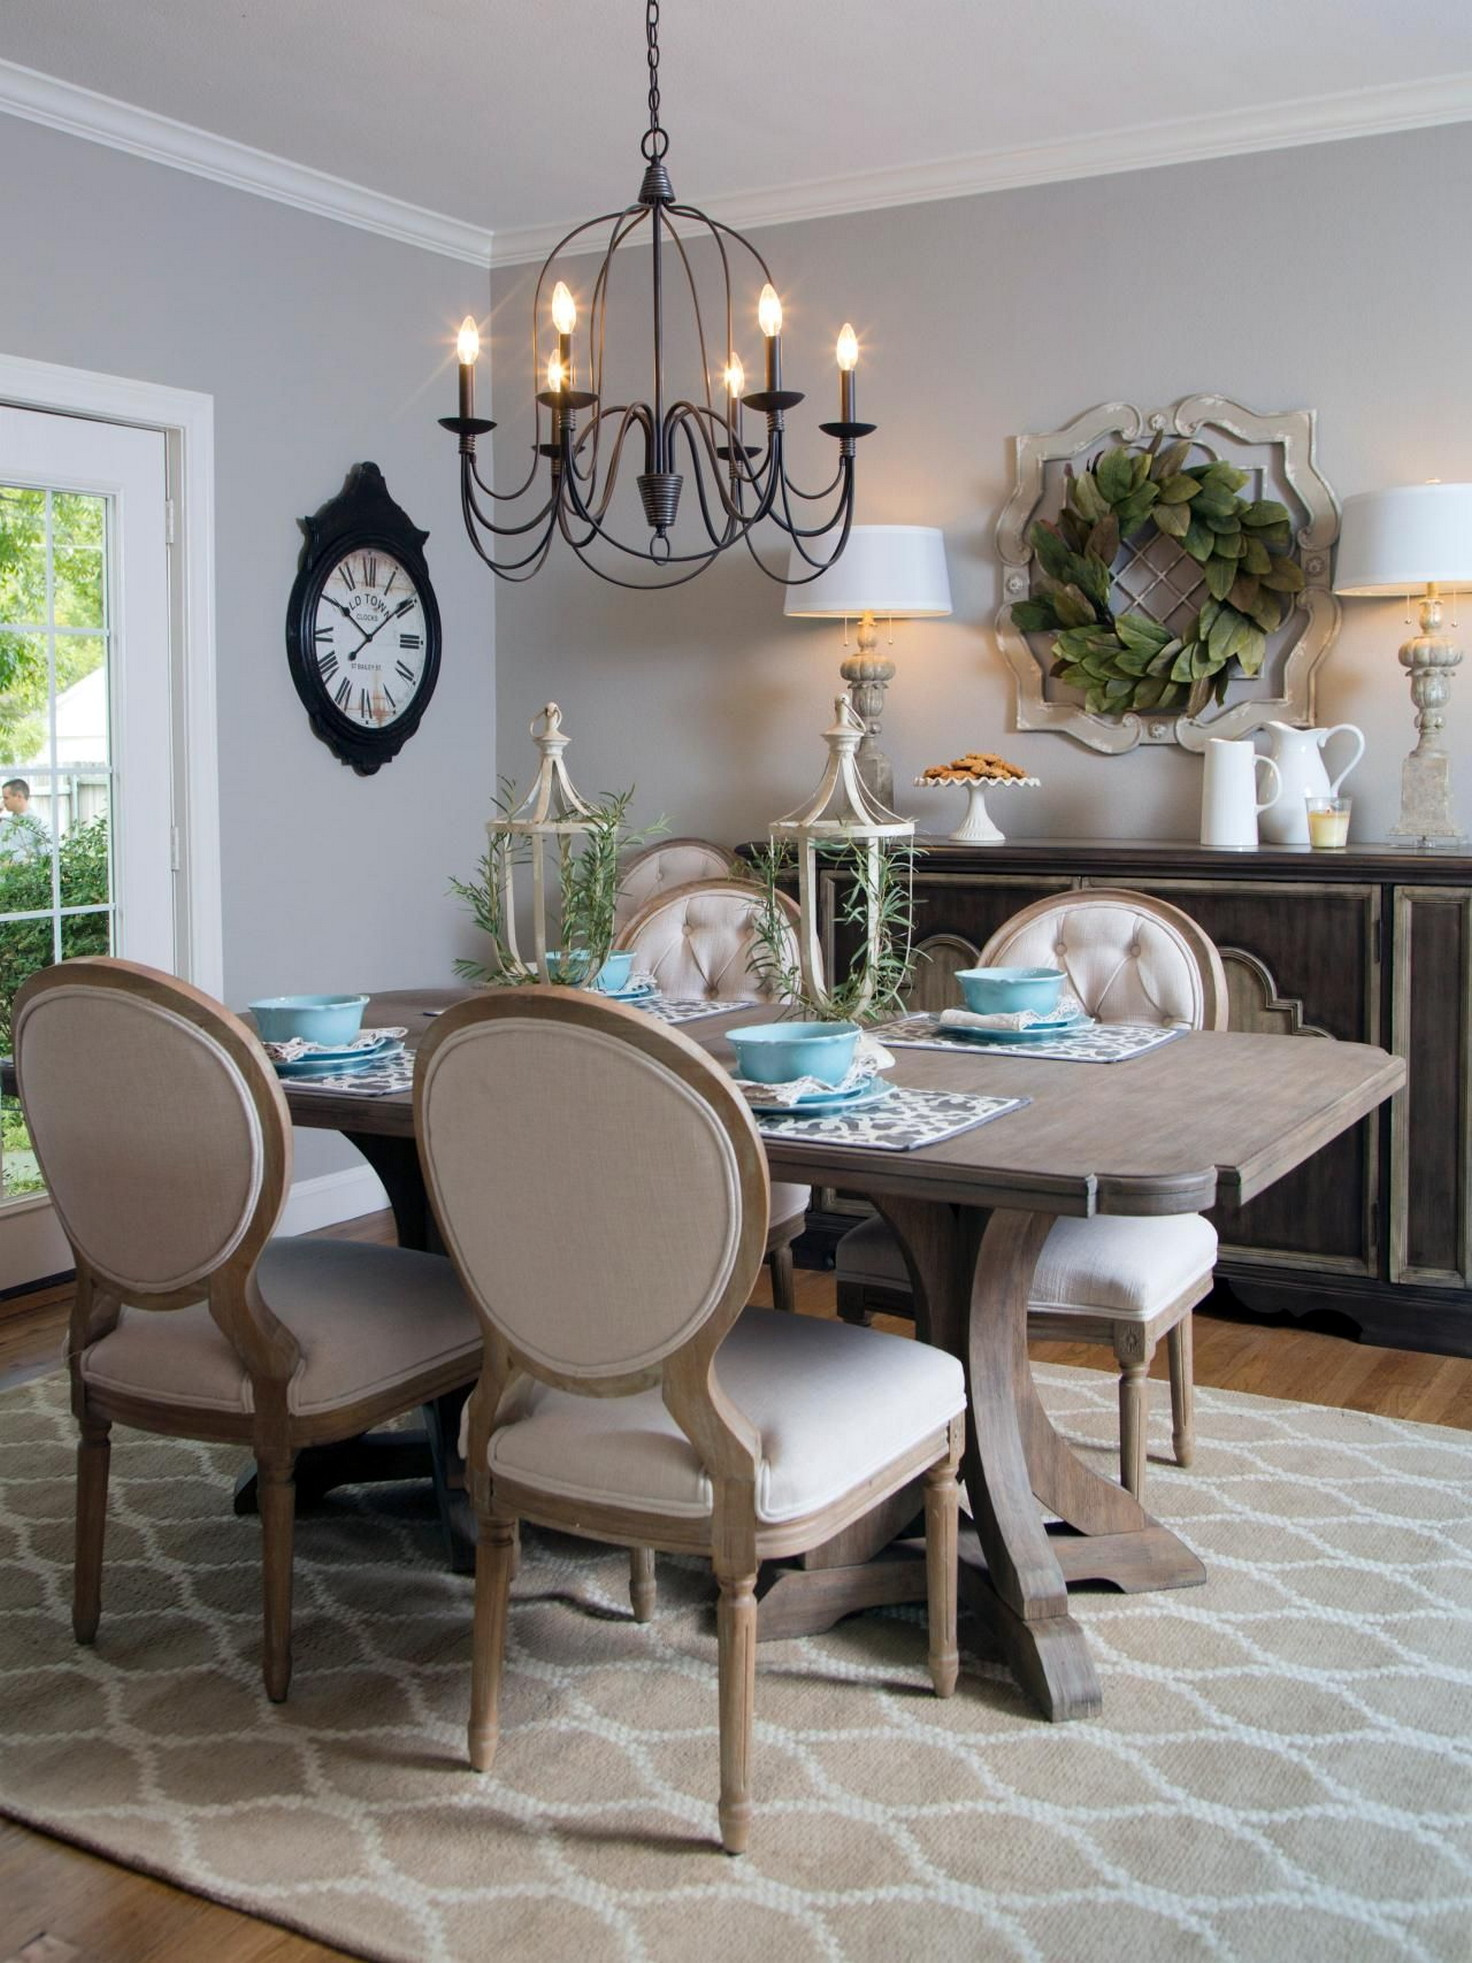 Open Style Dining Room French Country Style Architecturein